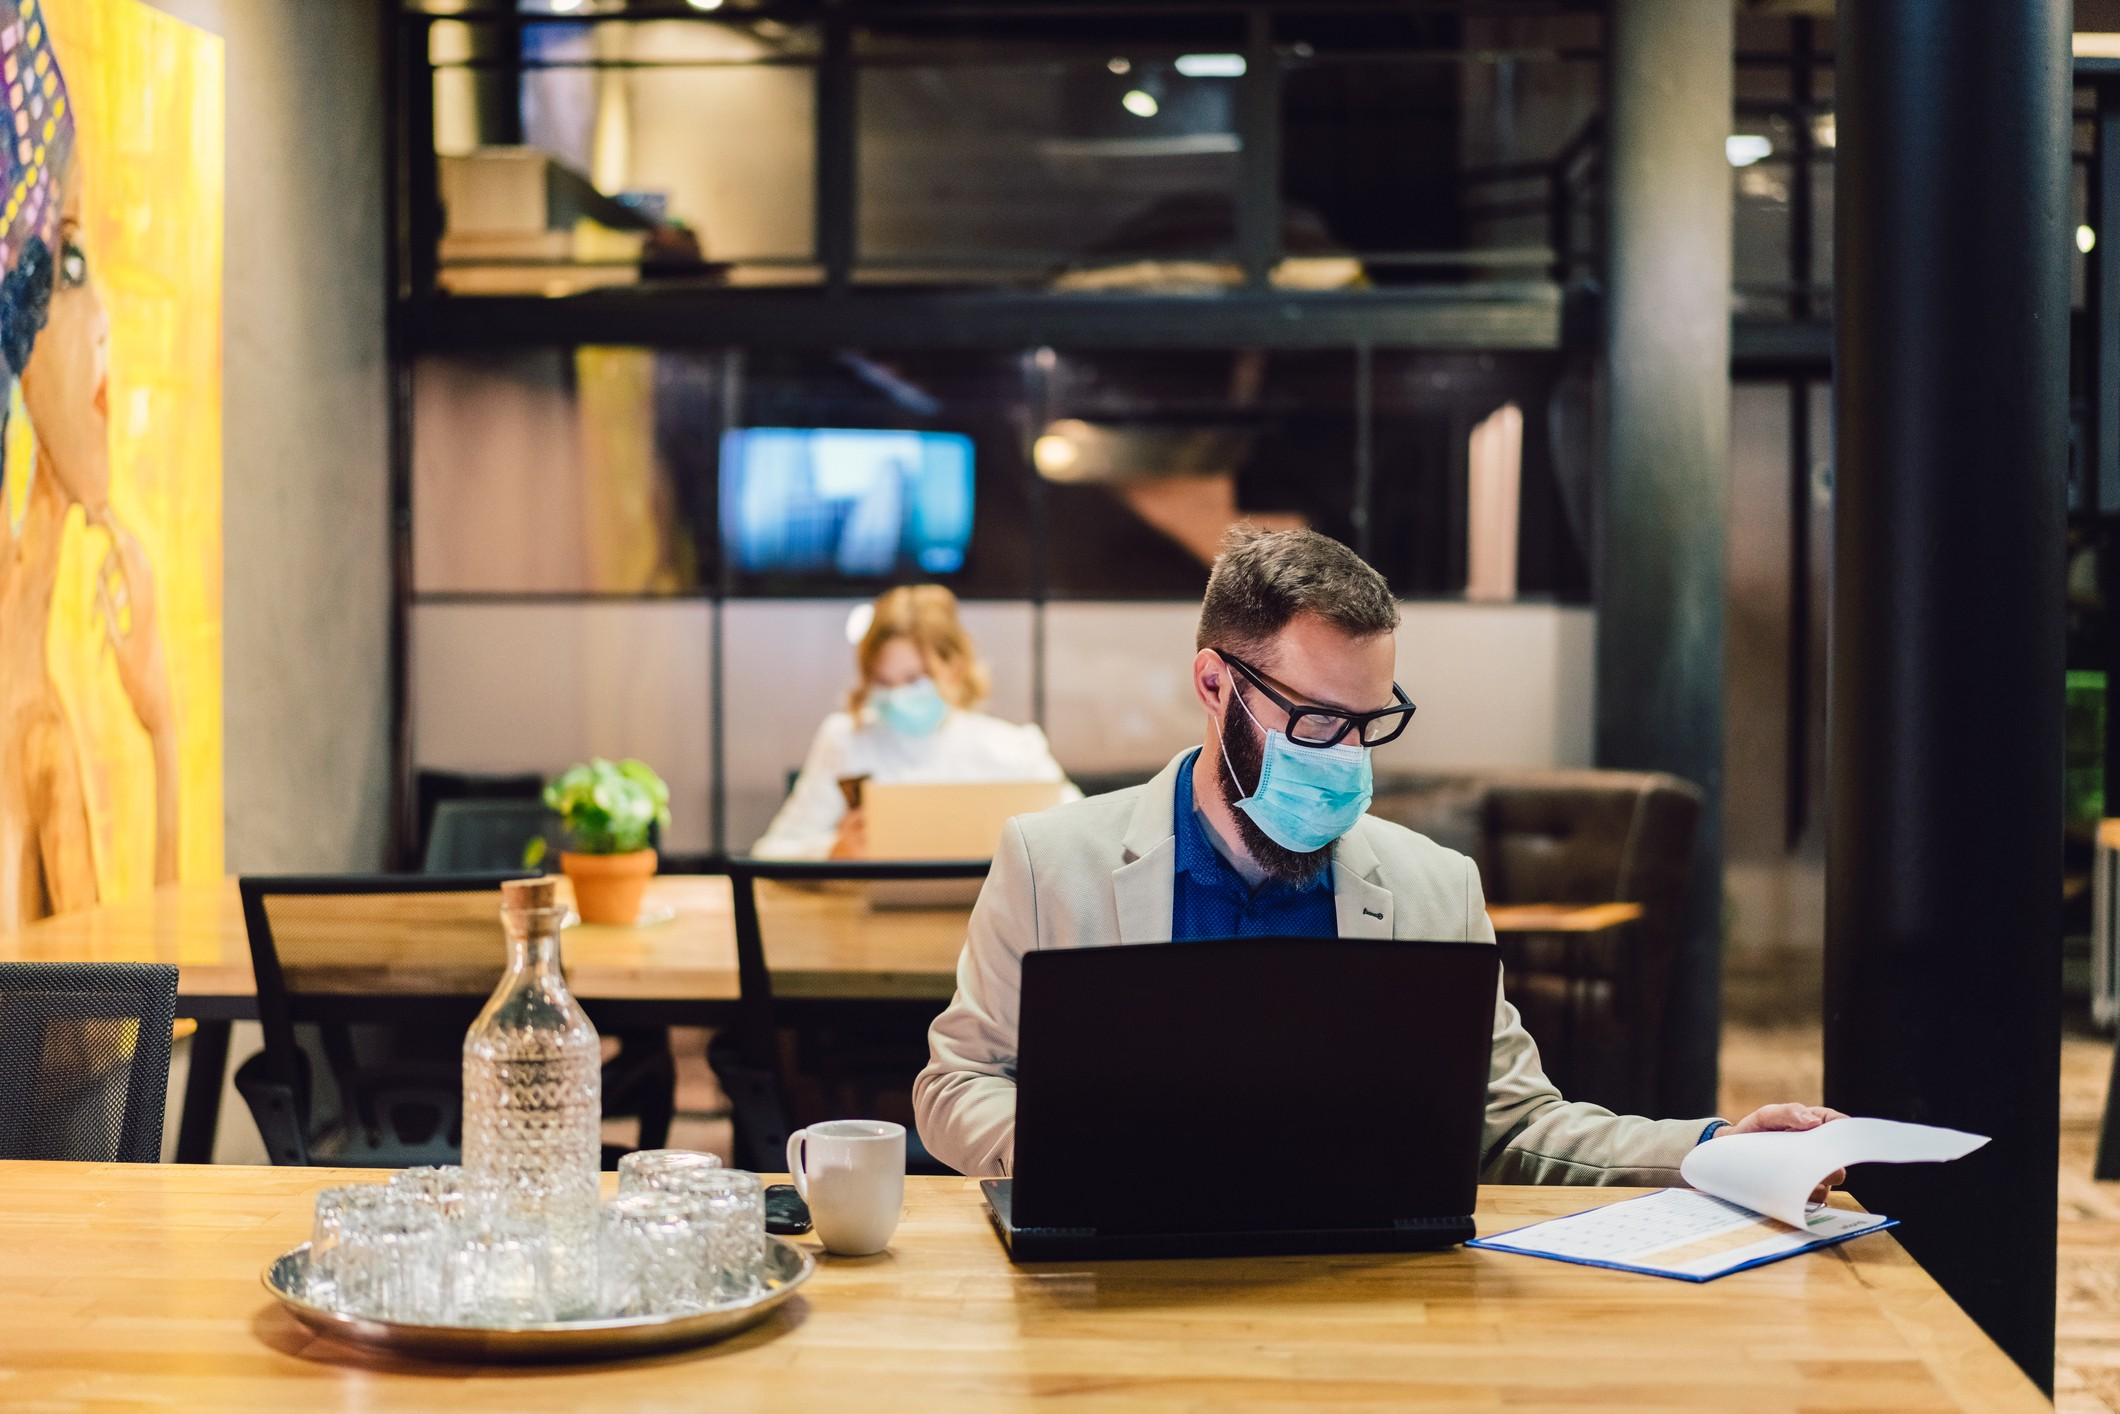 Will you require masks in your workspace?